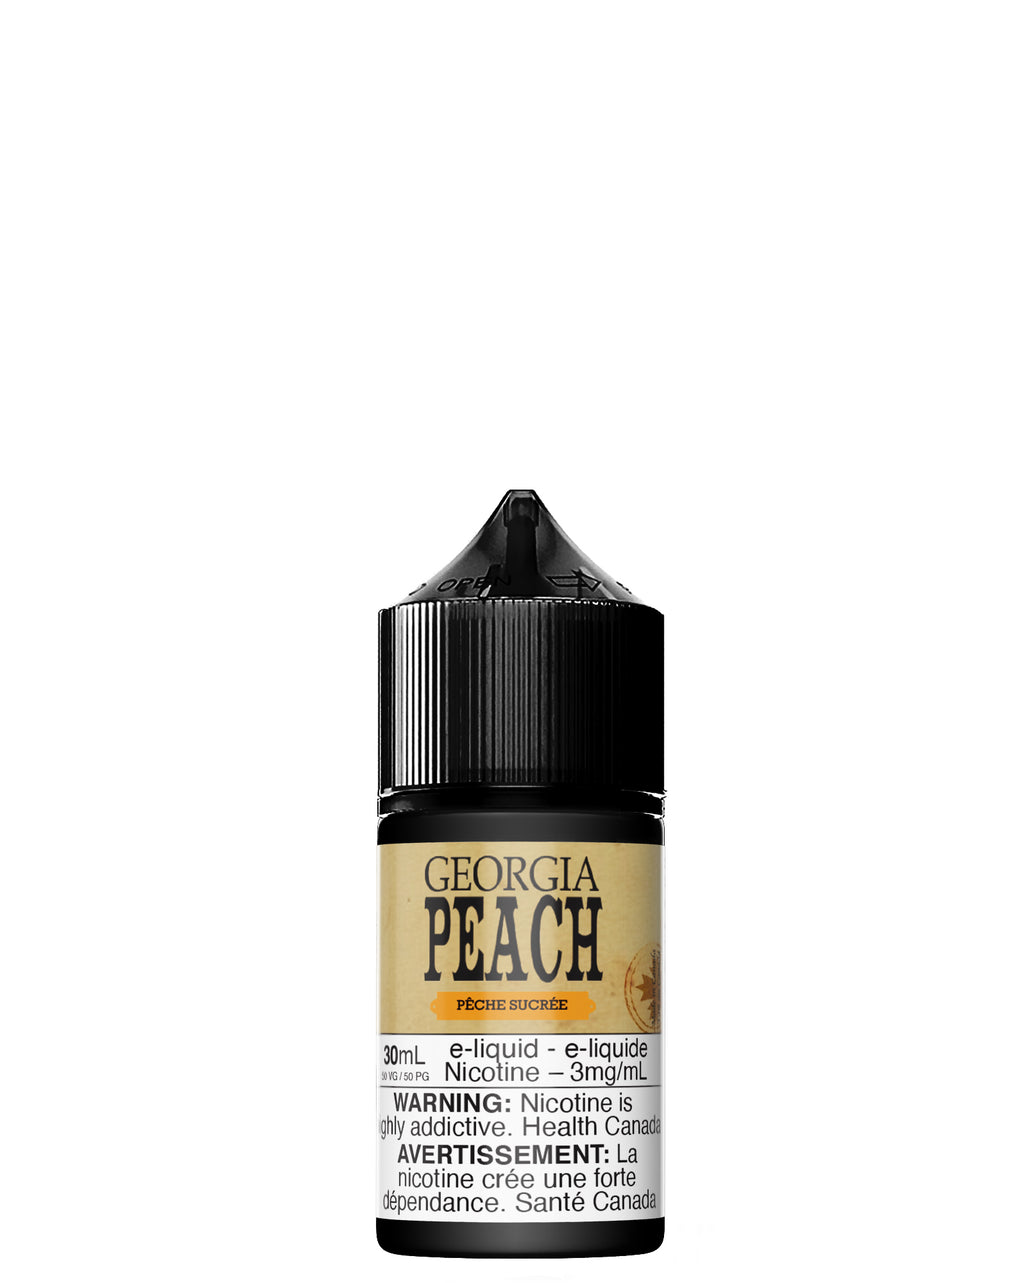 Georgia Peach 30ml by Vapeur Express